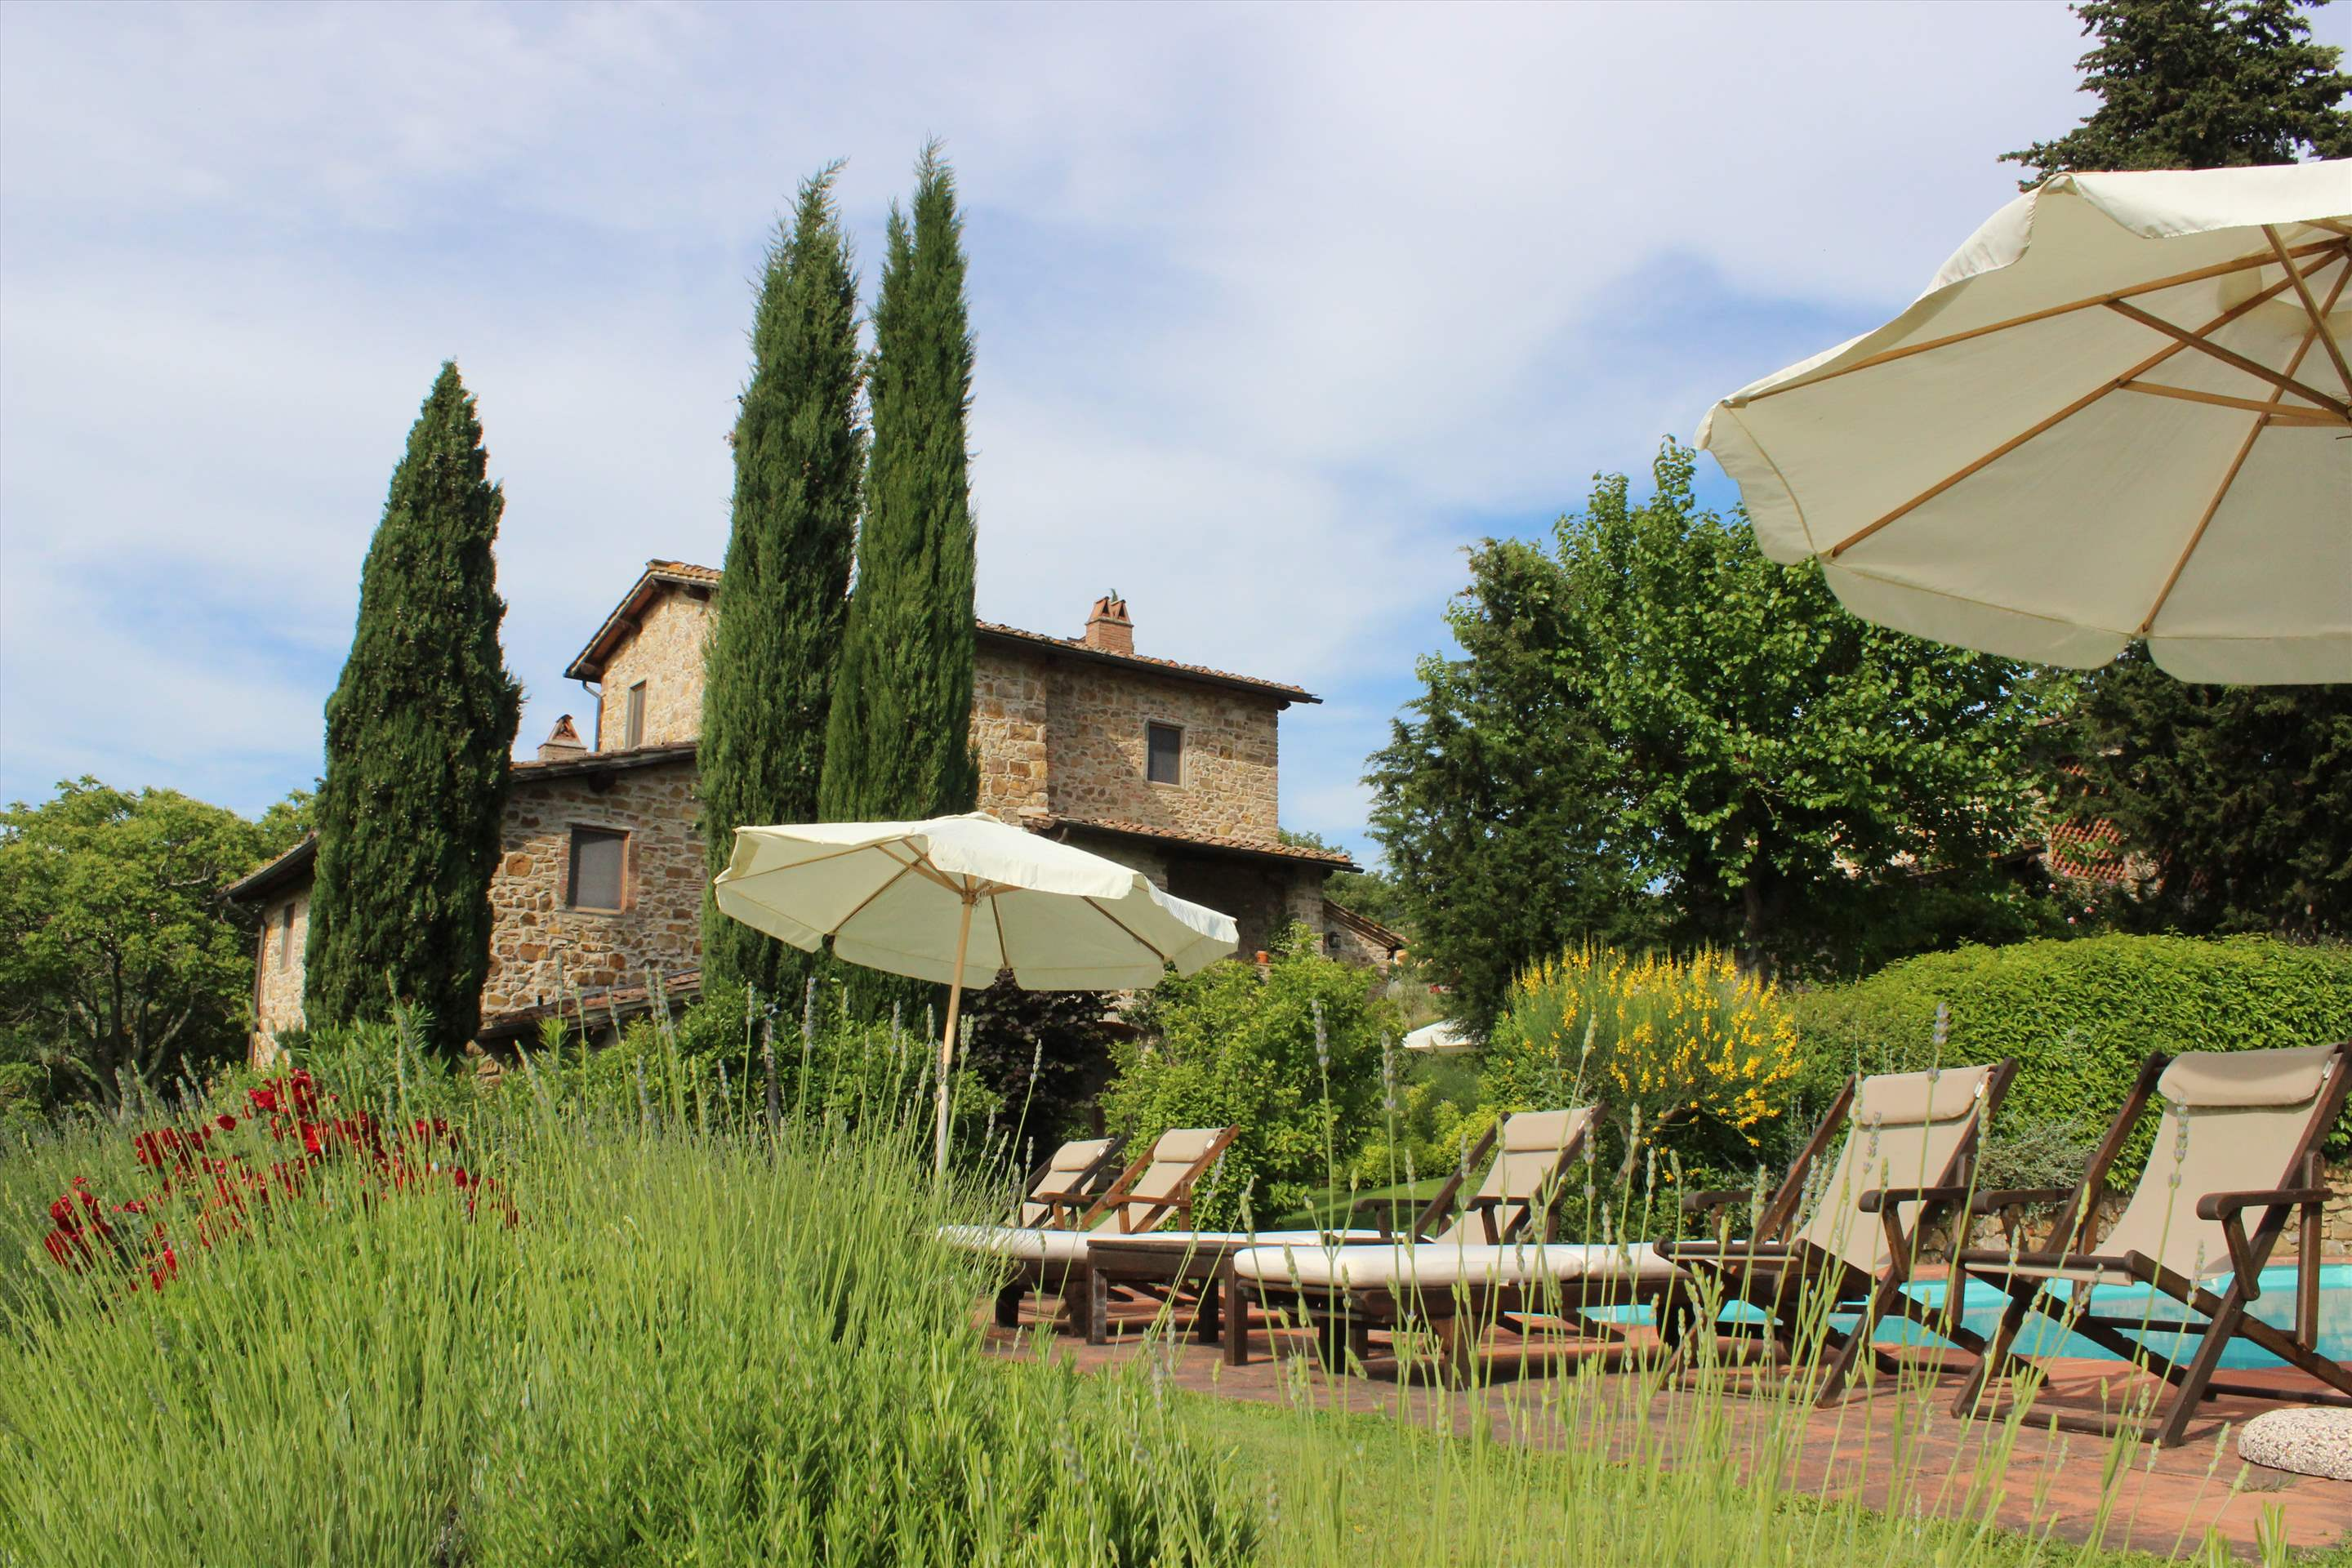 Casas Ferruzzi, 8 bedroom apartment in Chianti & Countryside, Tuscany Photo #1